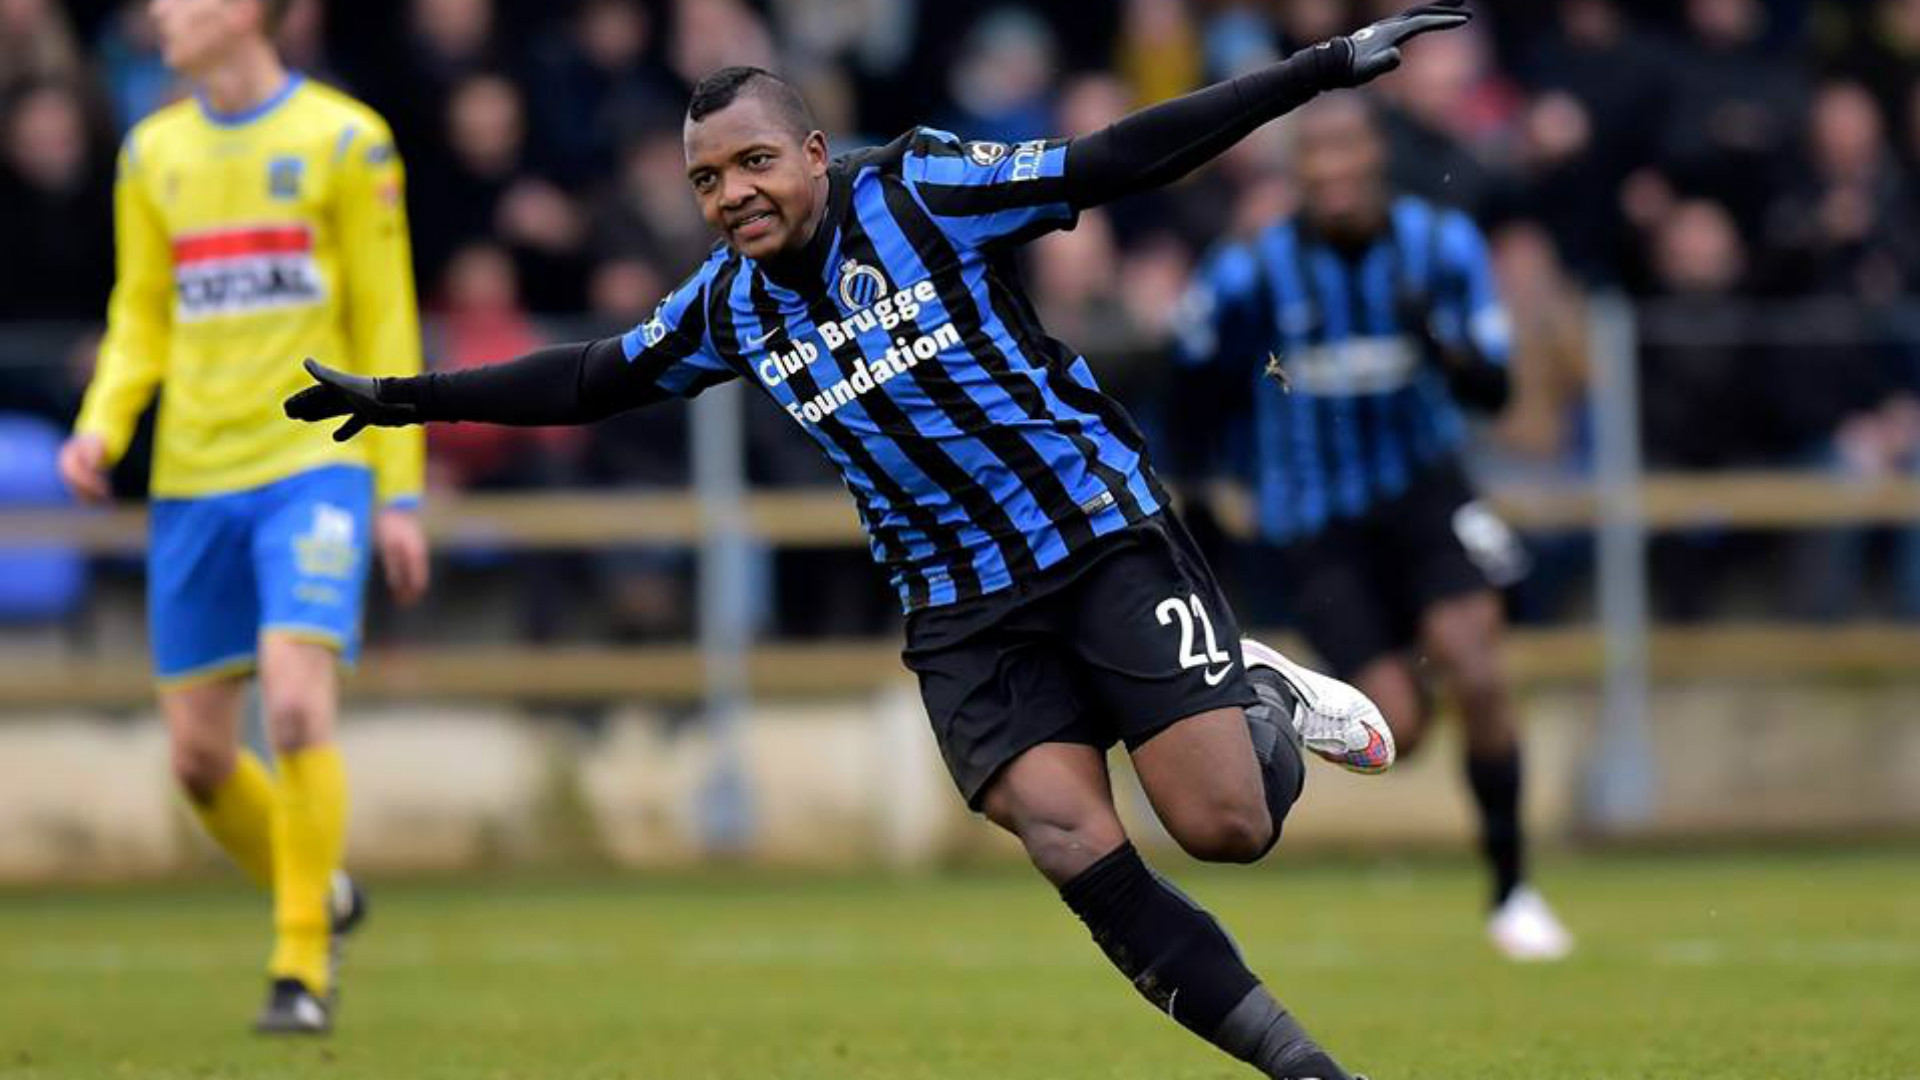 Brighton complete club record deal for Brugge forward Izquierdo